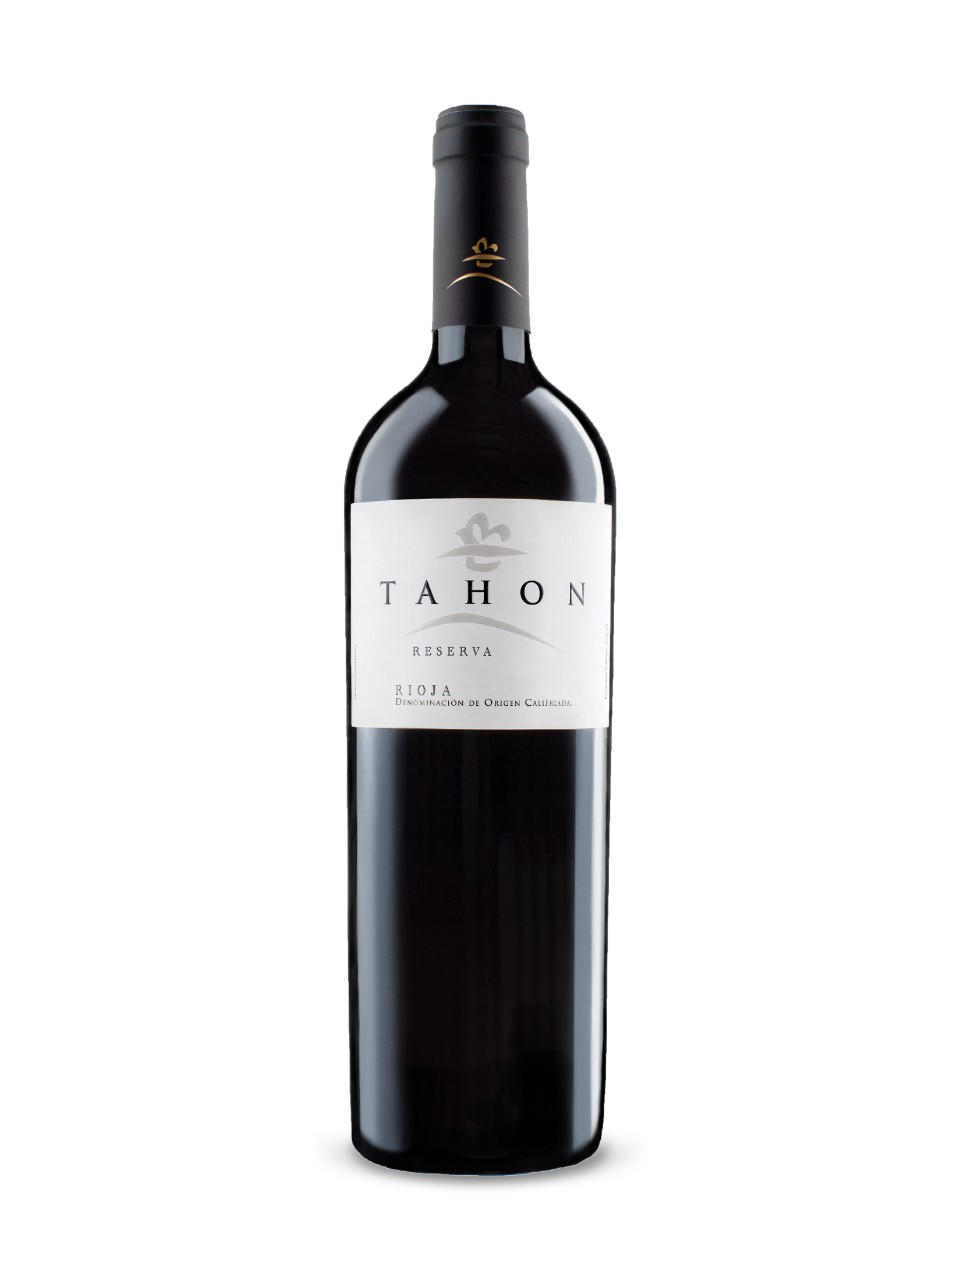 Tahon Reserva 2012 from LCBO